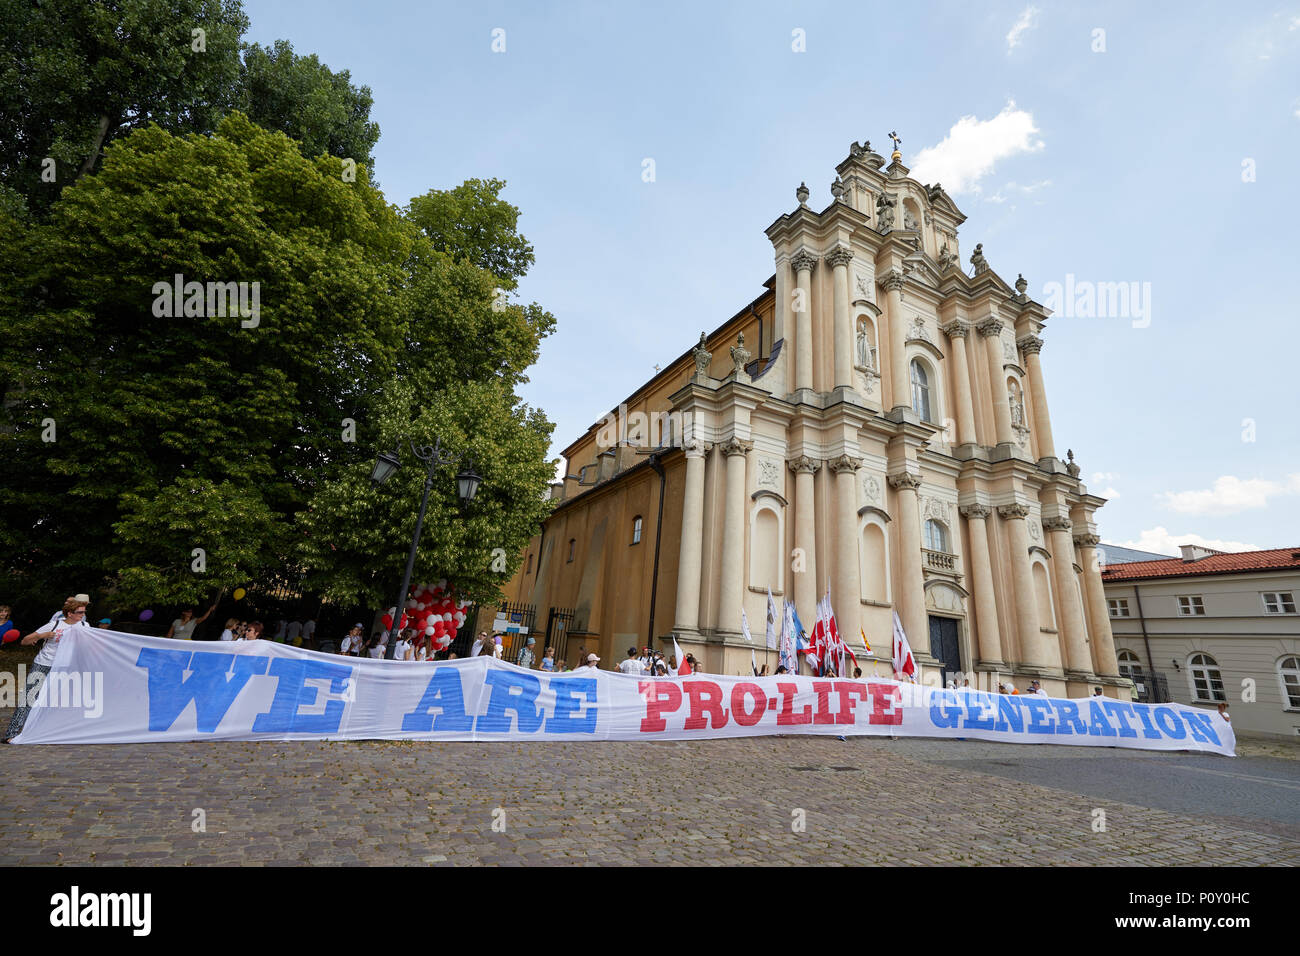 Warsaw, Poland. 10th June 2018. Pro-life supporters outside Kościół Opieki św. Józefa w Warszawie (Church of St. Joseph of the Visitationists) in Warsaw, part of a series of pro-life demonstrations across Poland on 10 June 2018. Credit: Kevin Frost/Alamy Live News - Stock Image